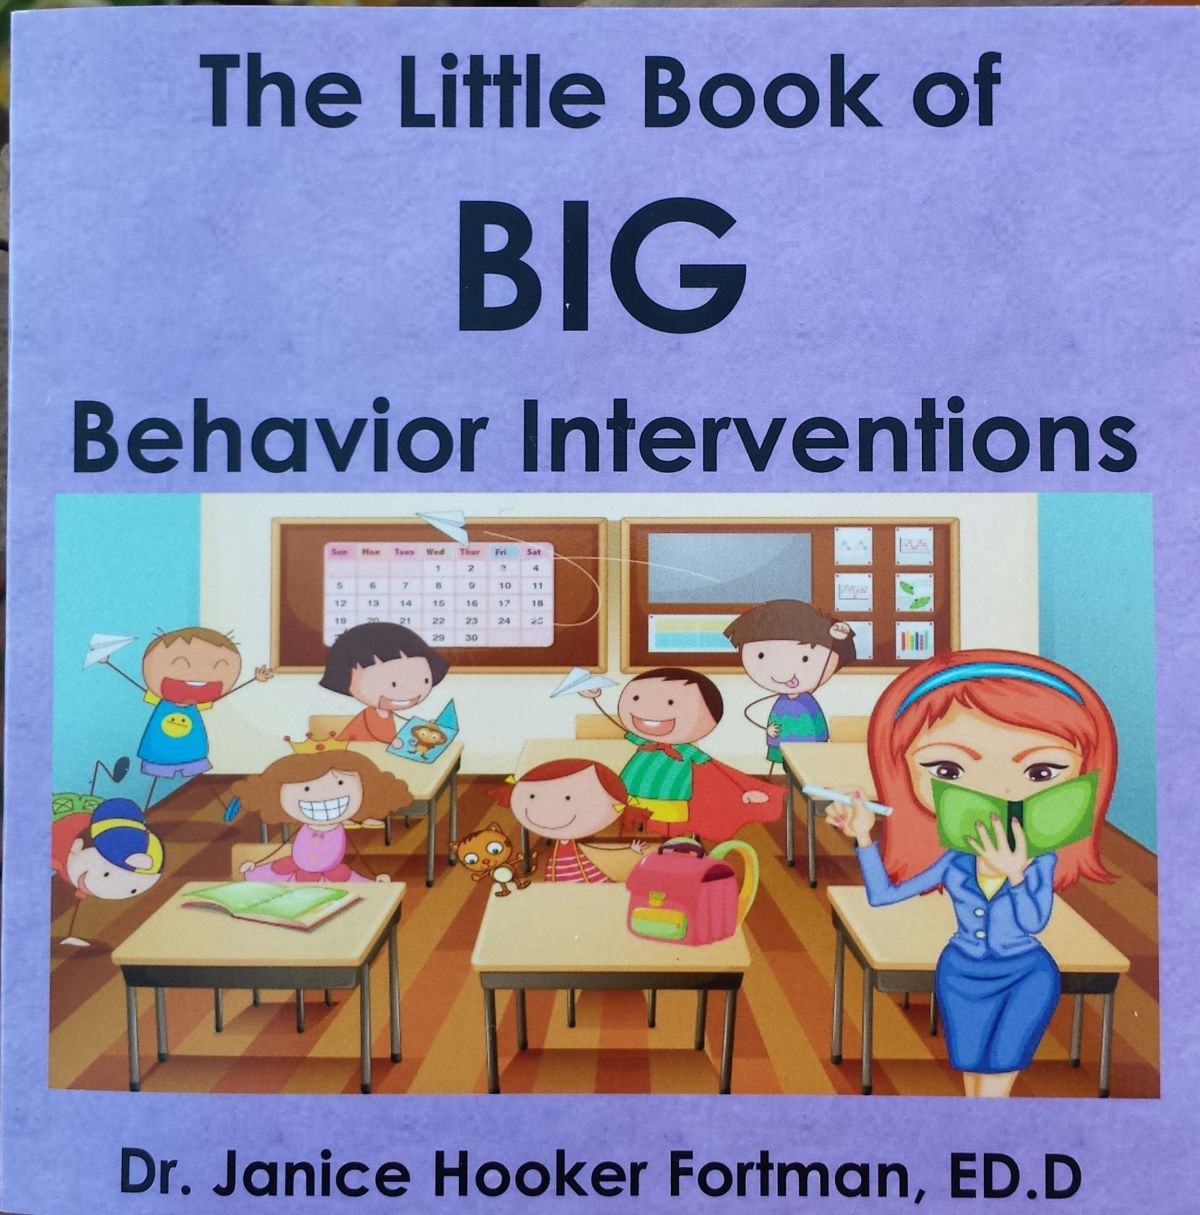 The Little Book of BIG Behavior Interventions